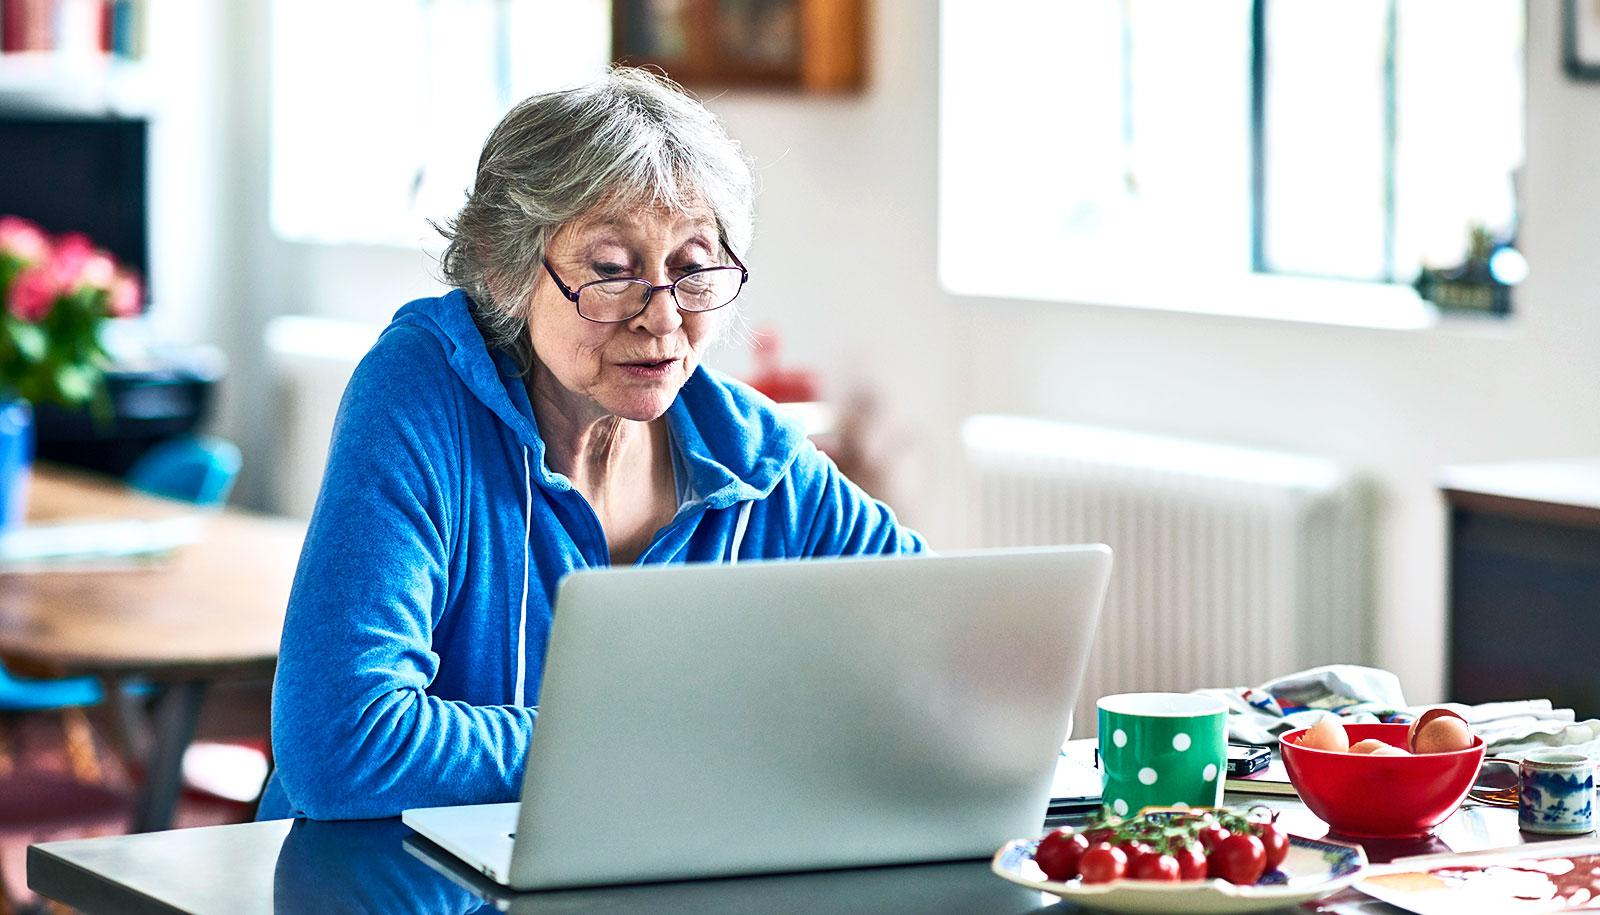 older woman looking at lap top